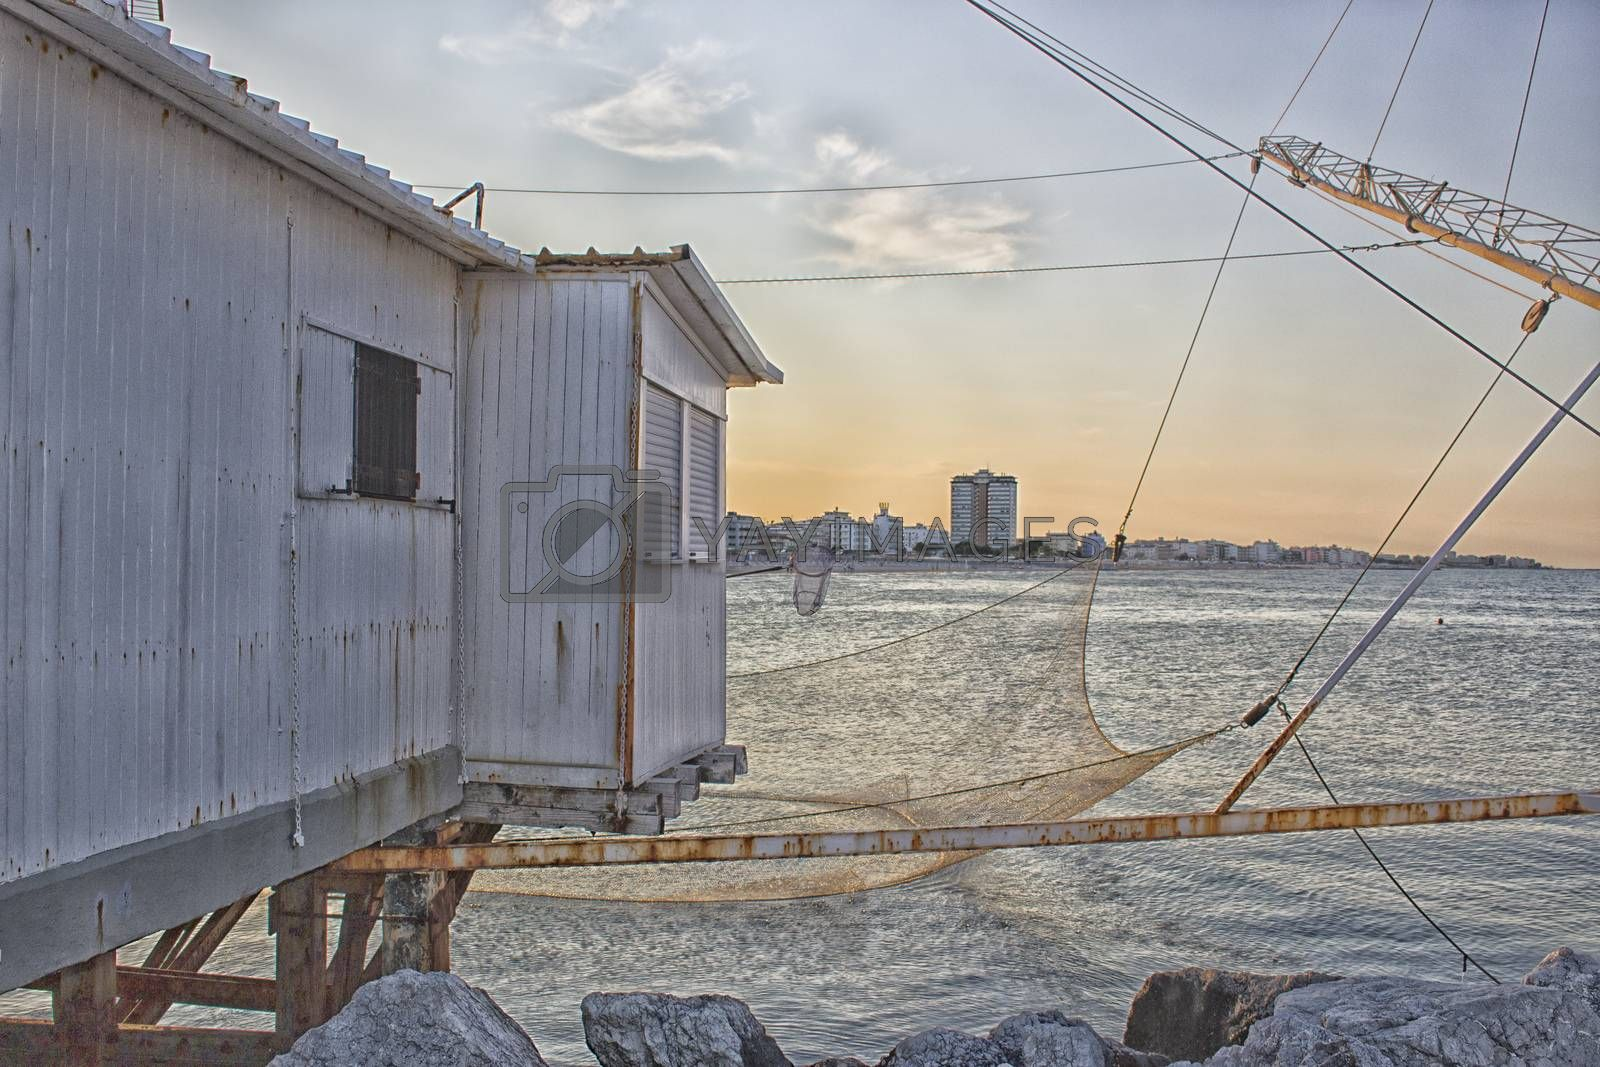 Fishing hut in the harbour channel of Cervia in Northern Italy on the Adriatic Sea